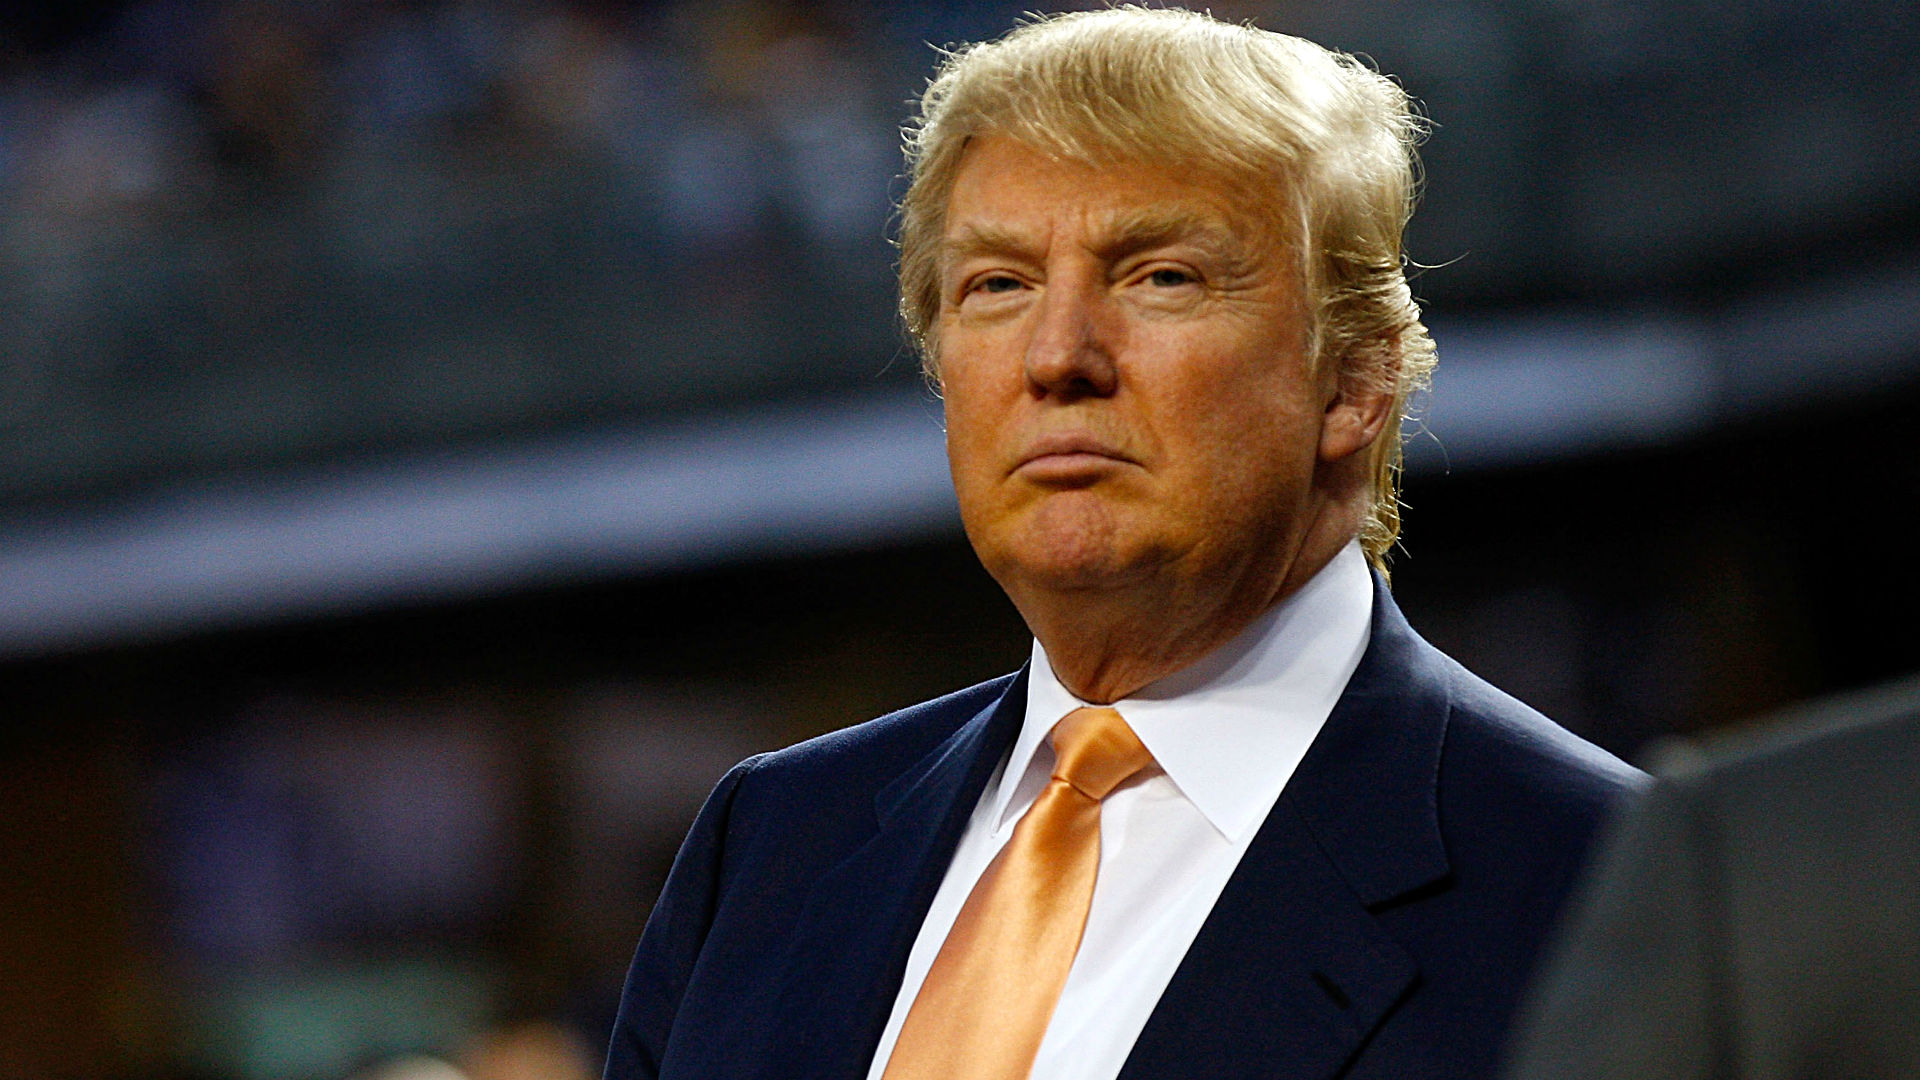 Donald Trump says no first pitch at Yankees game on Aug. 15; maybe 'later in season'